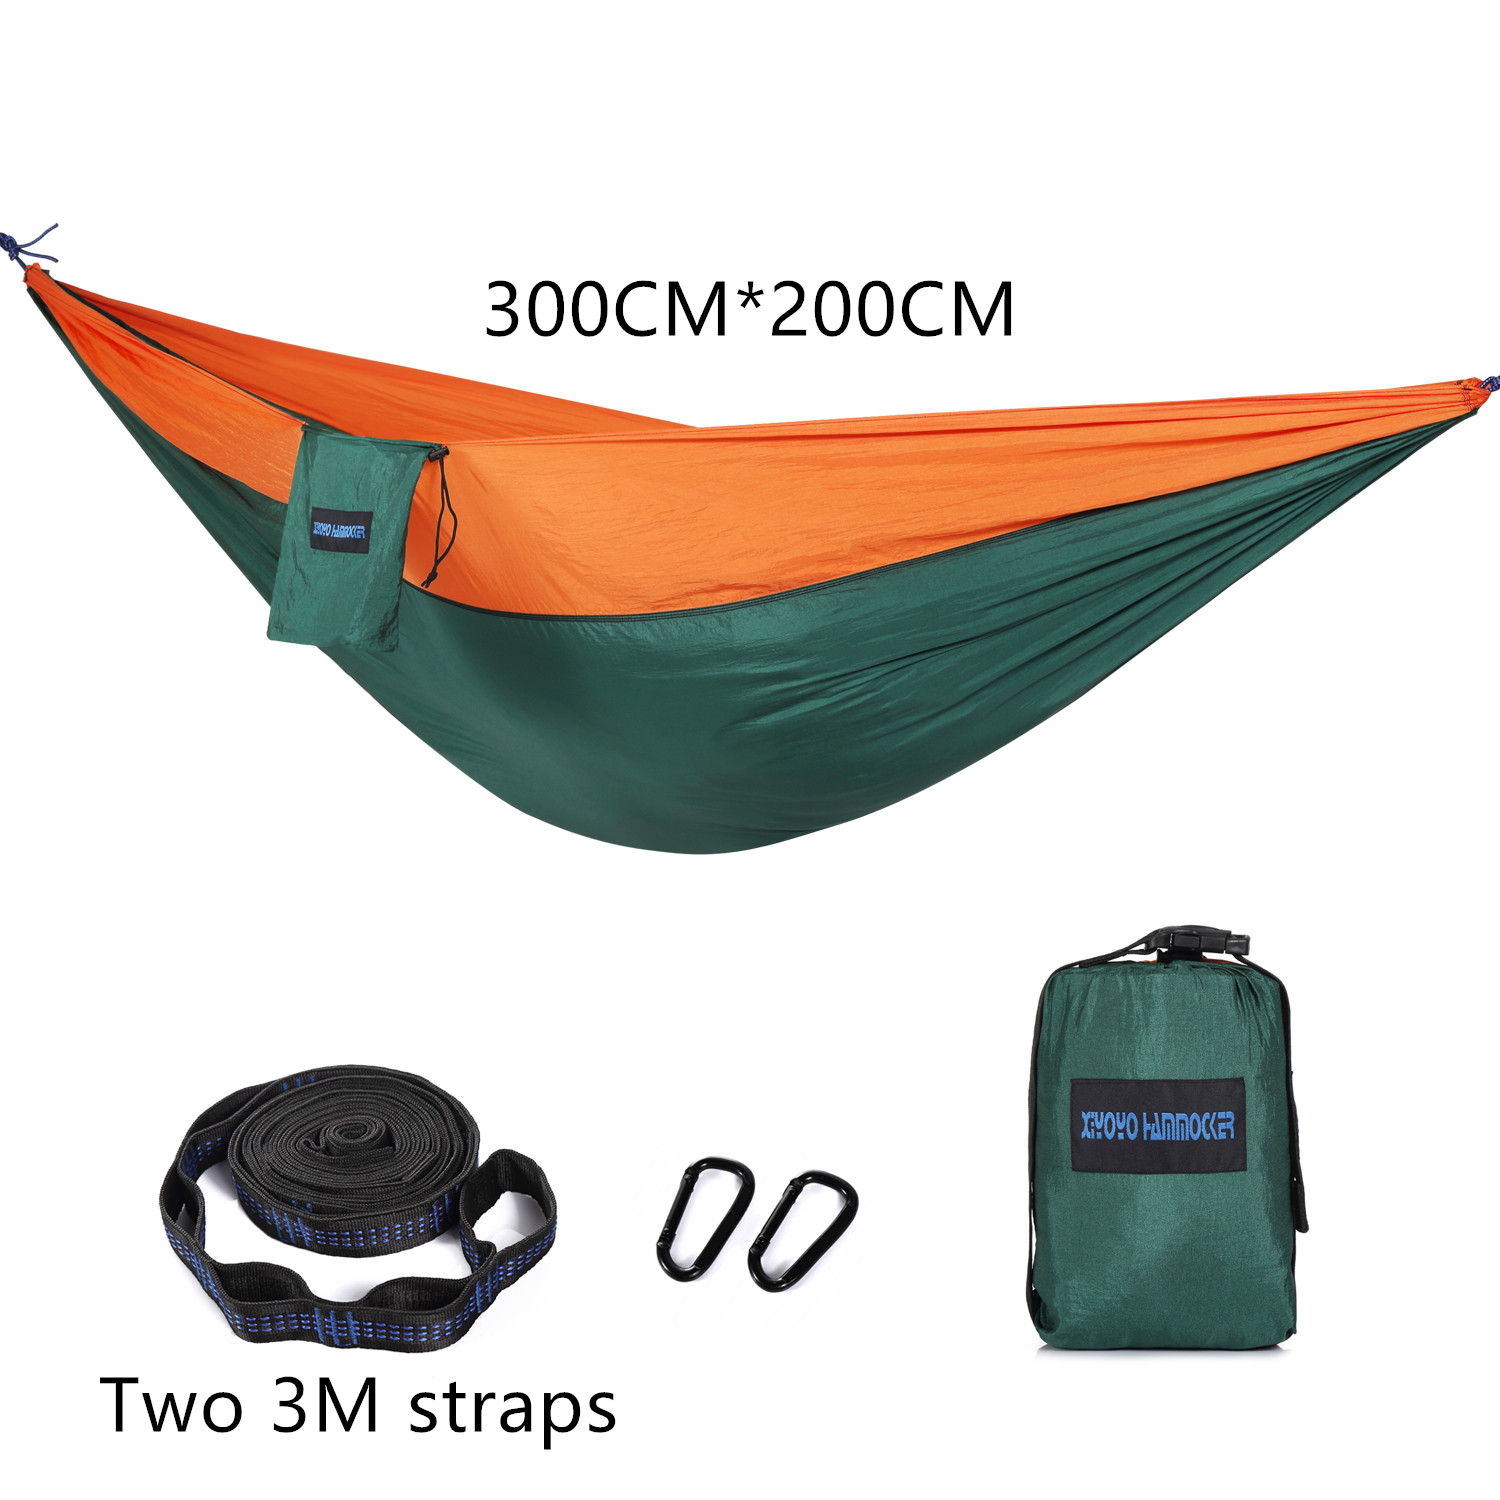 Homeme Double hammock adult outdoor backpack travel survival hunting bed straps 2 with 2 carabinersHomeme Double hammock adult outdoor backpack travel survival hunting bed straps 2 with 2 carabiners